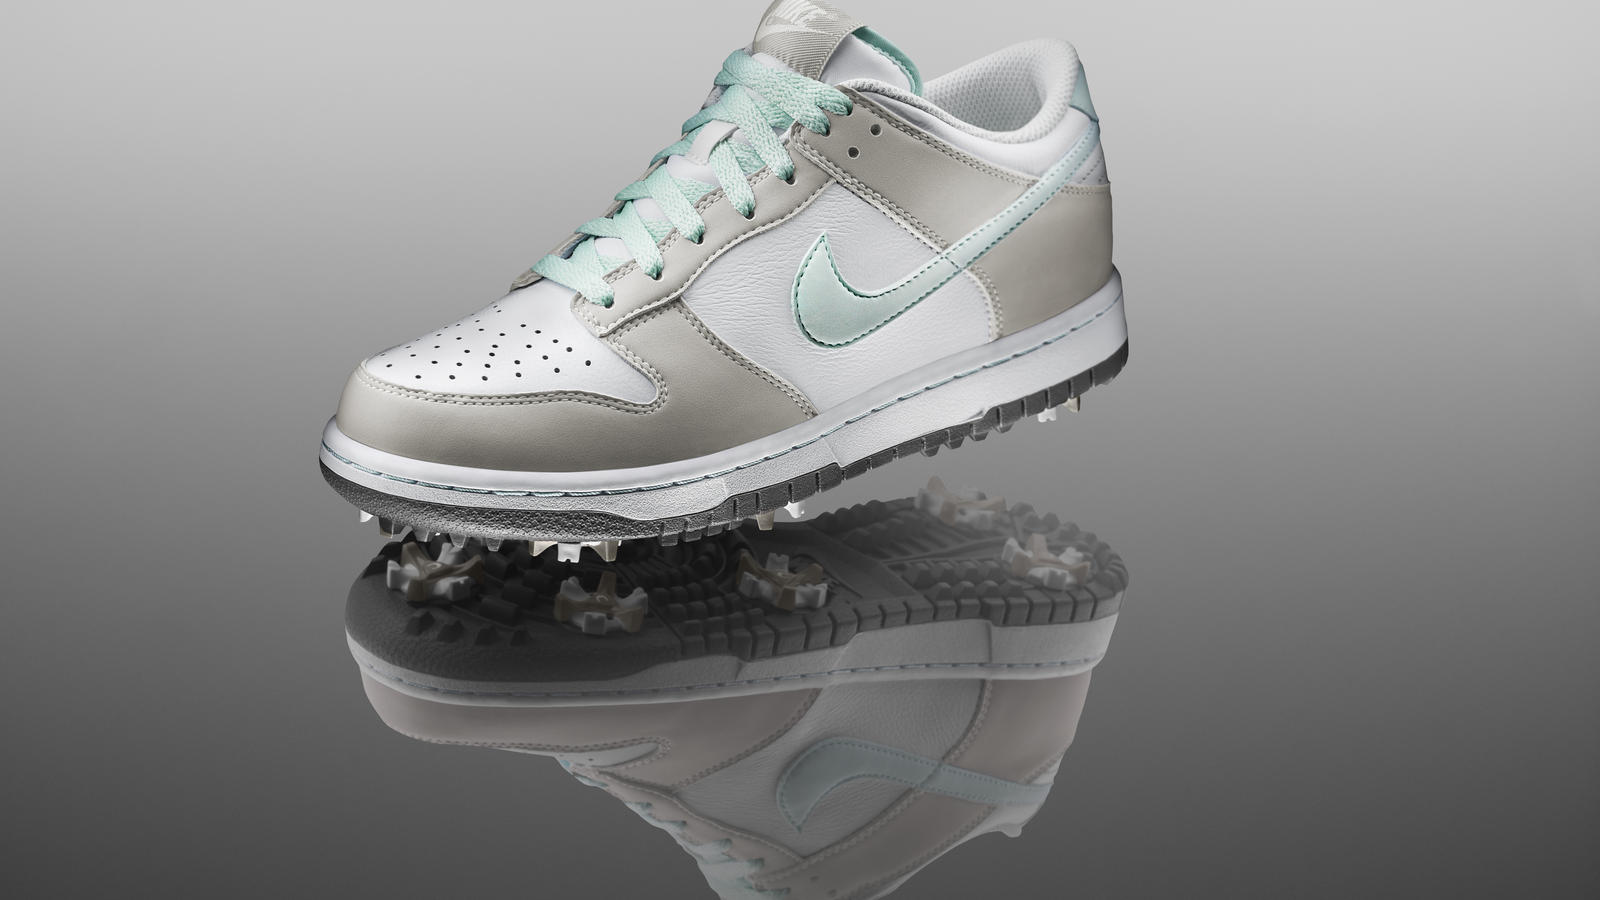 Nike Golf Pays Tribute to the Iconic Nike Dunk Shoe Nike News